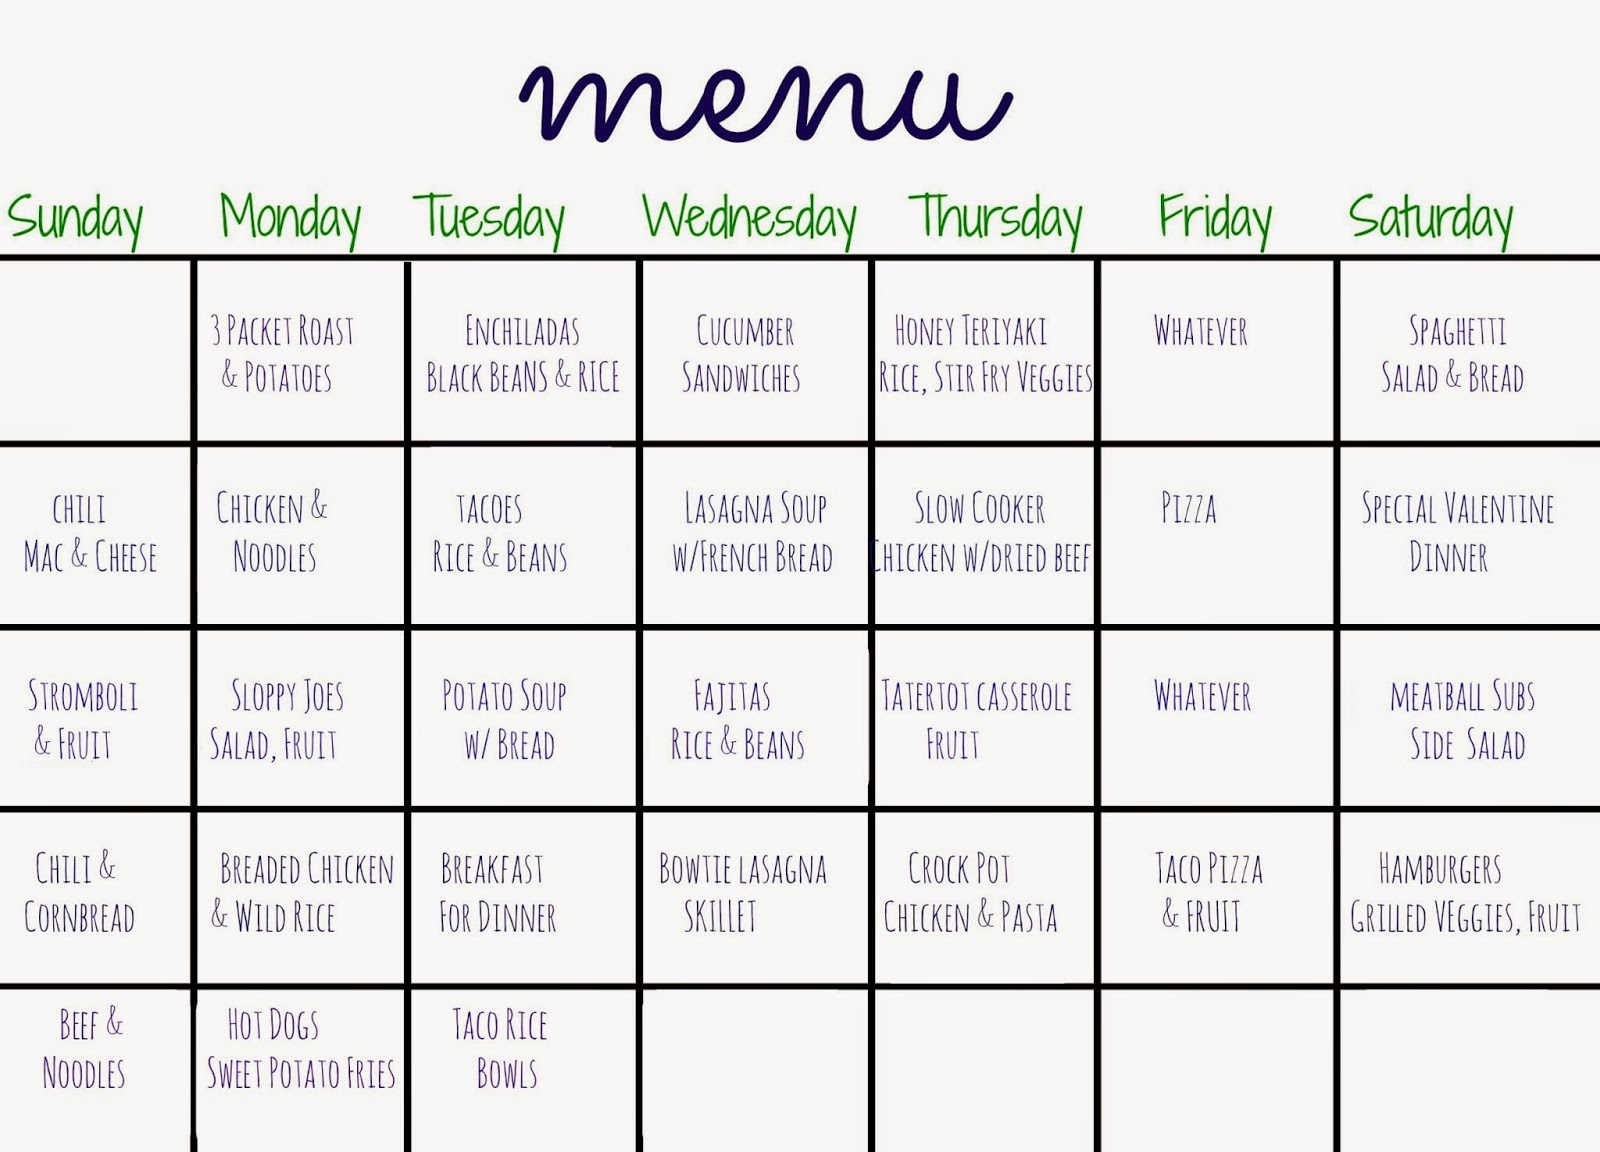 Birthday Calendar Ideas : Days of dinners another month meal planning the